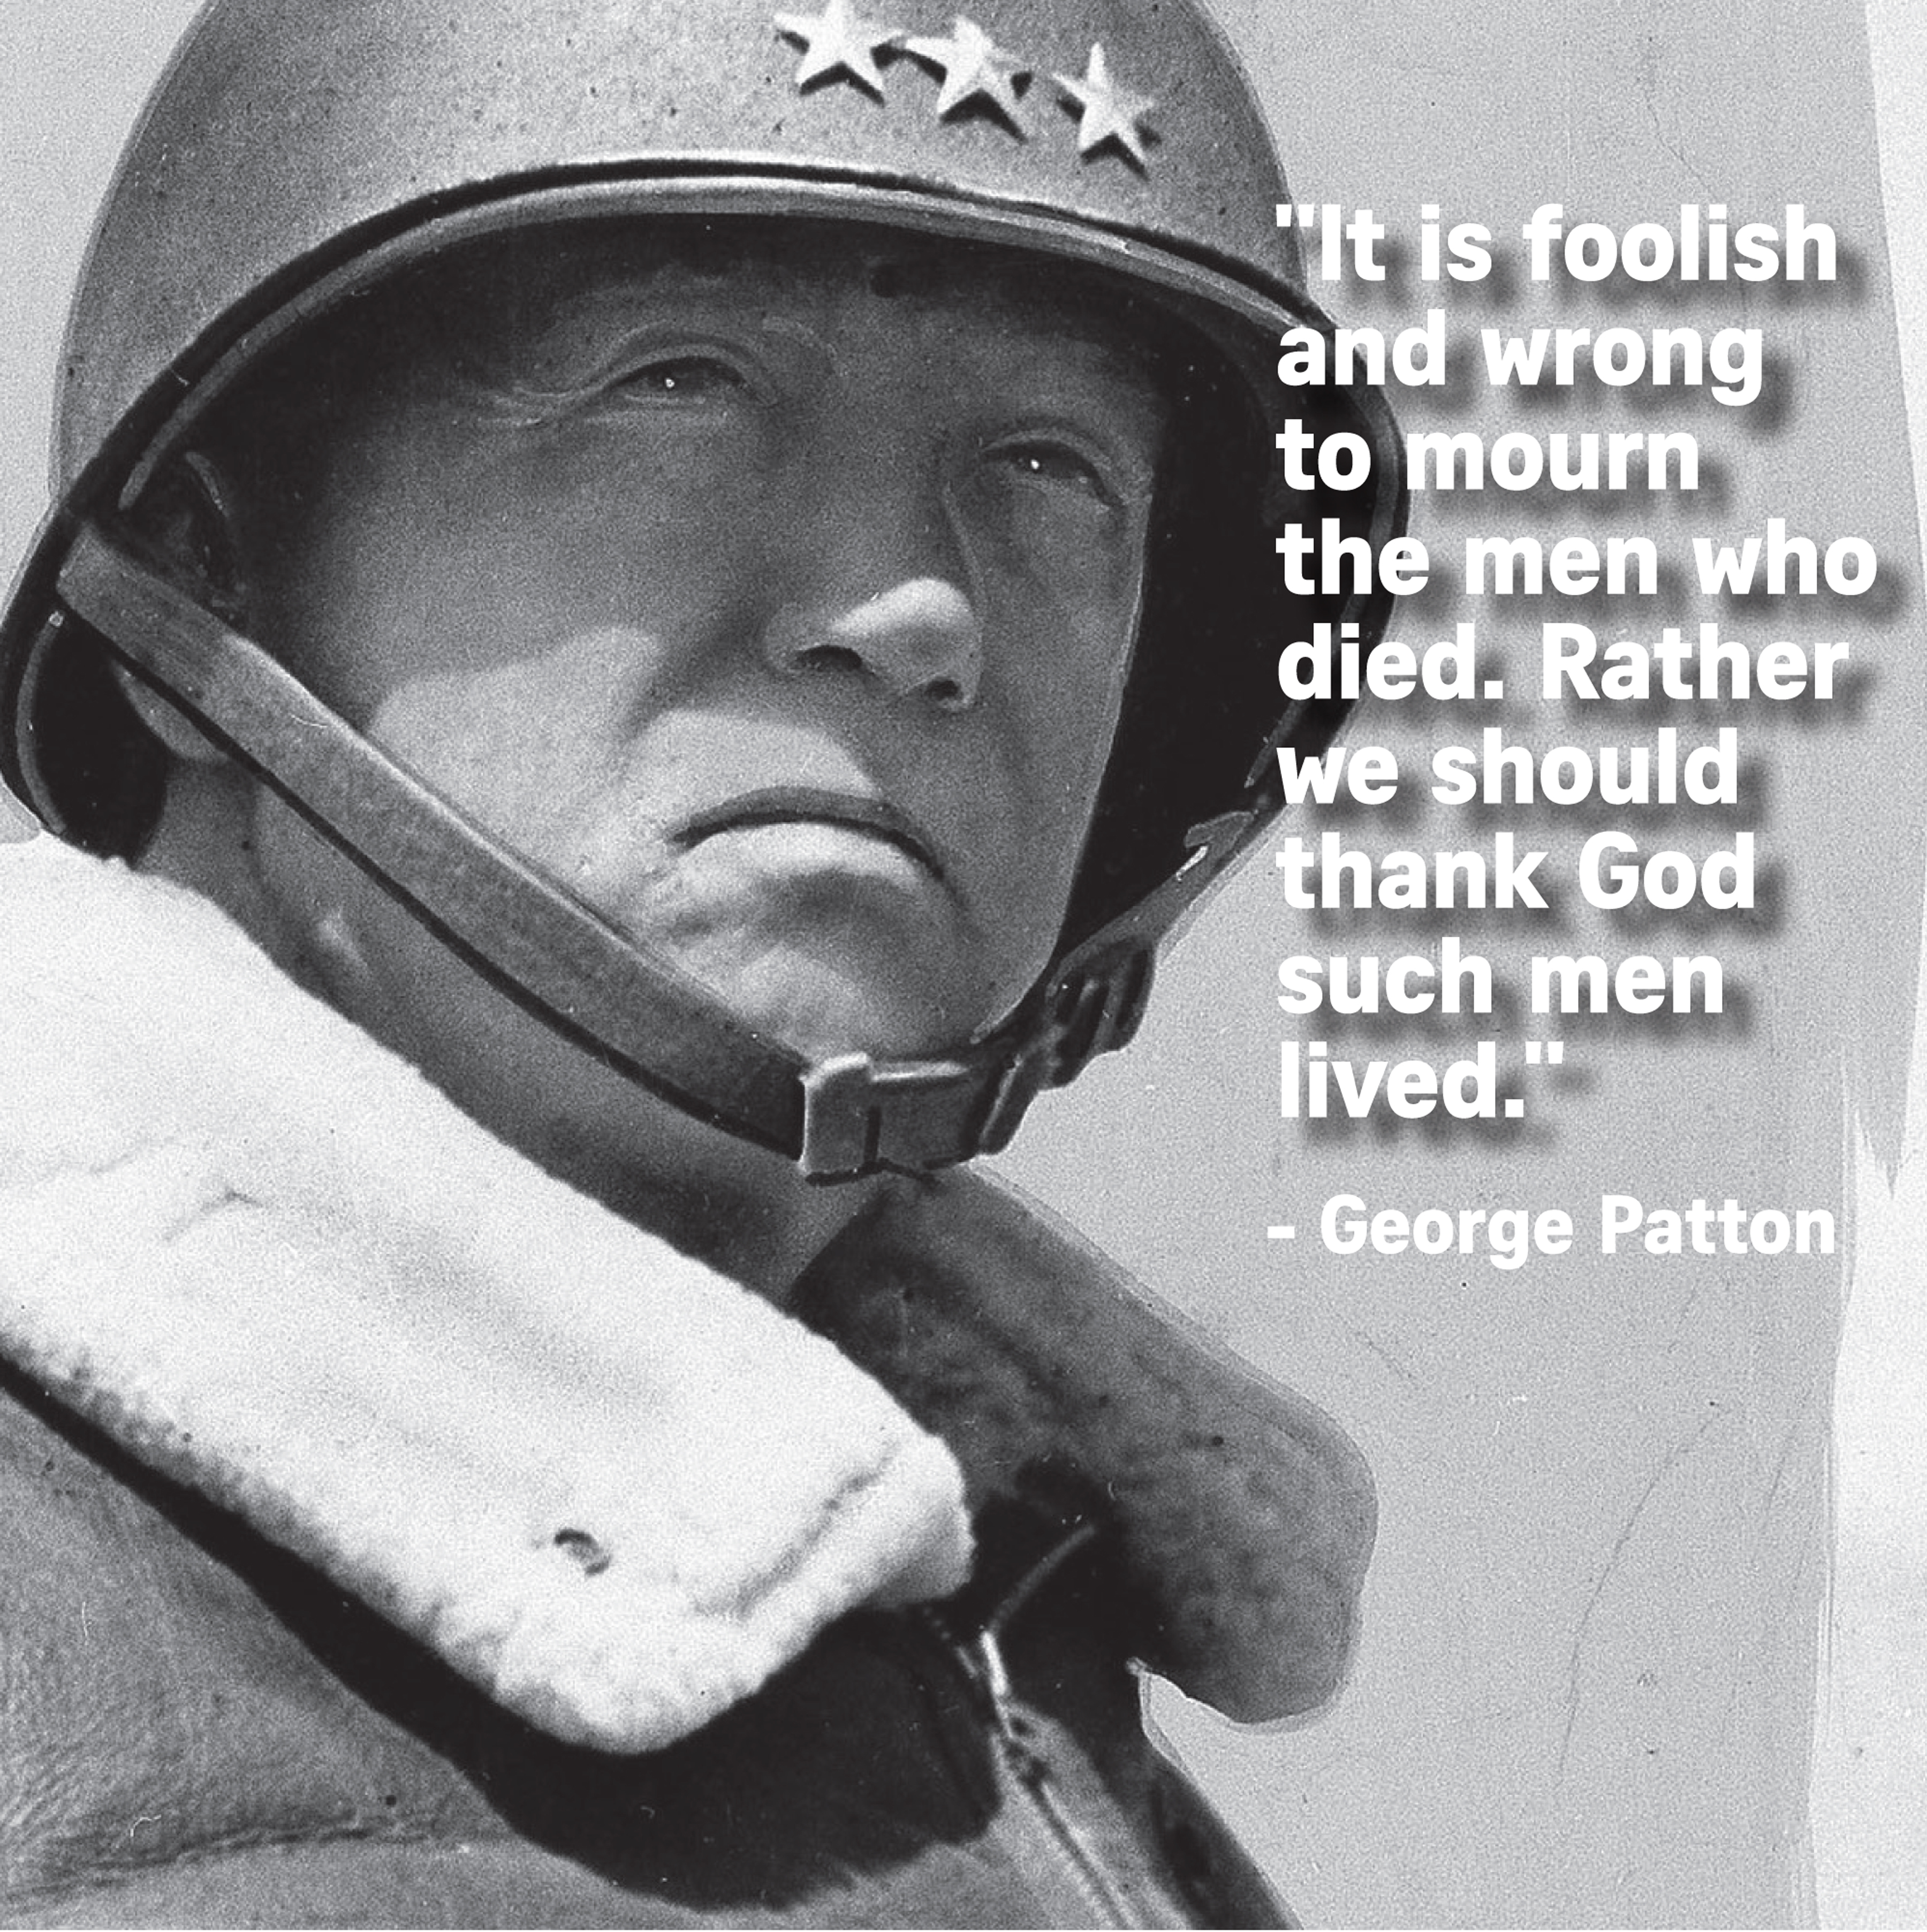 General Patton Quotes: Nine Quotes Capturing The Spirit Of Memorial Day